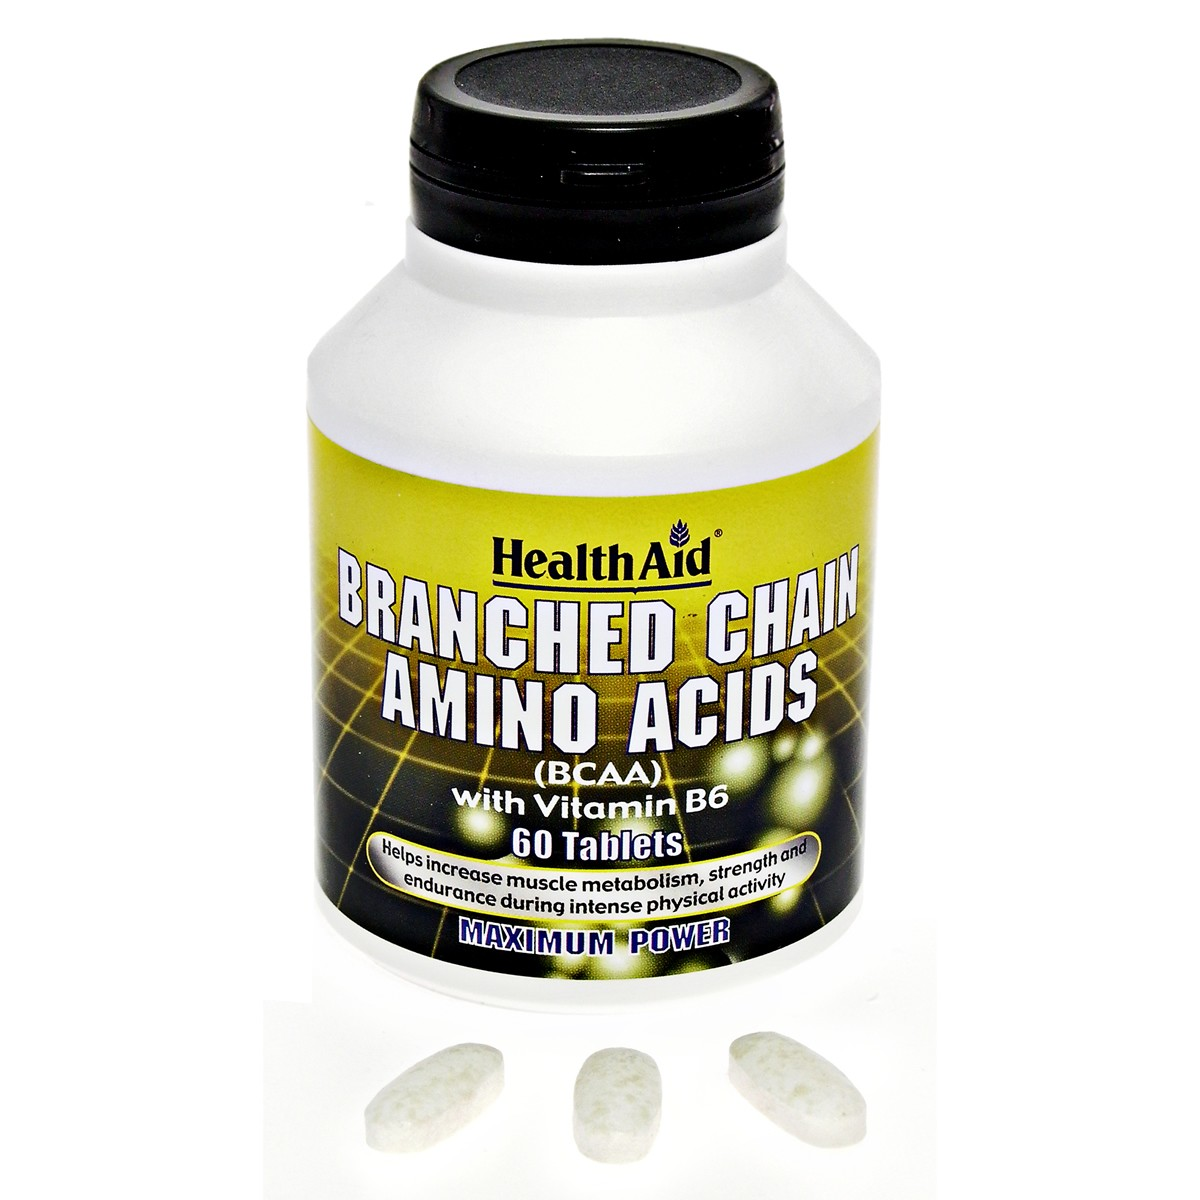 HealthAid Branch Chain Amino Acids + Vitamin B6